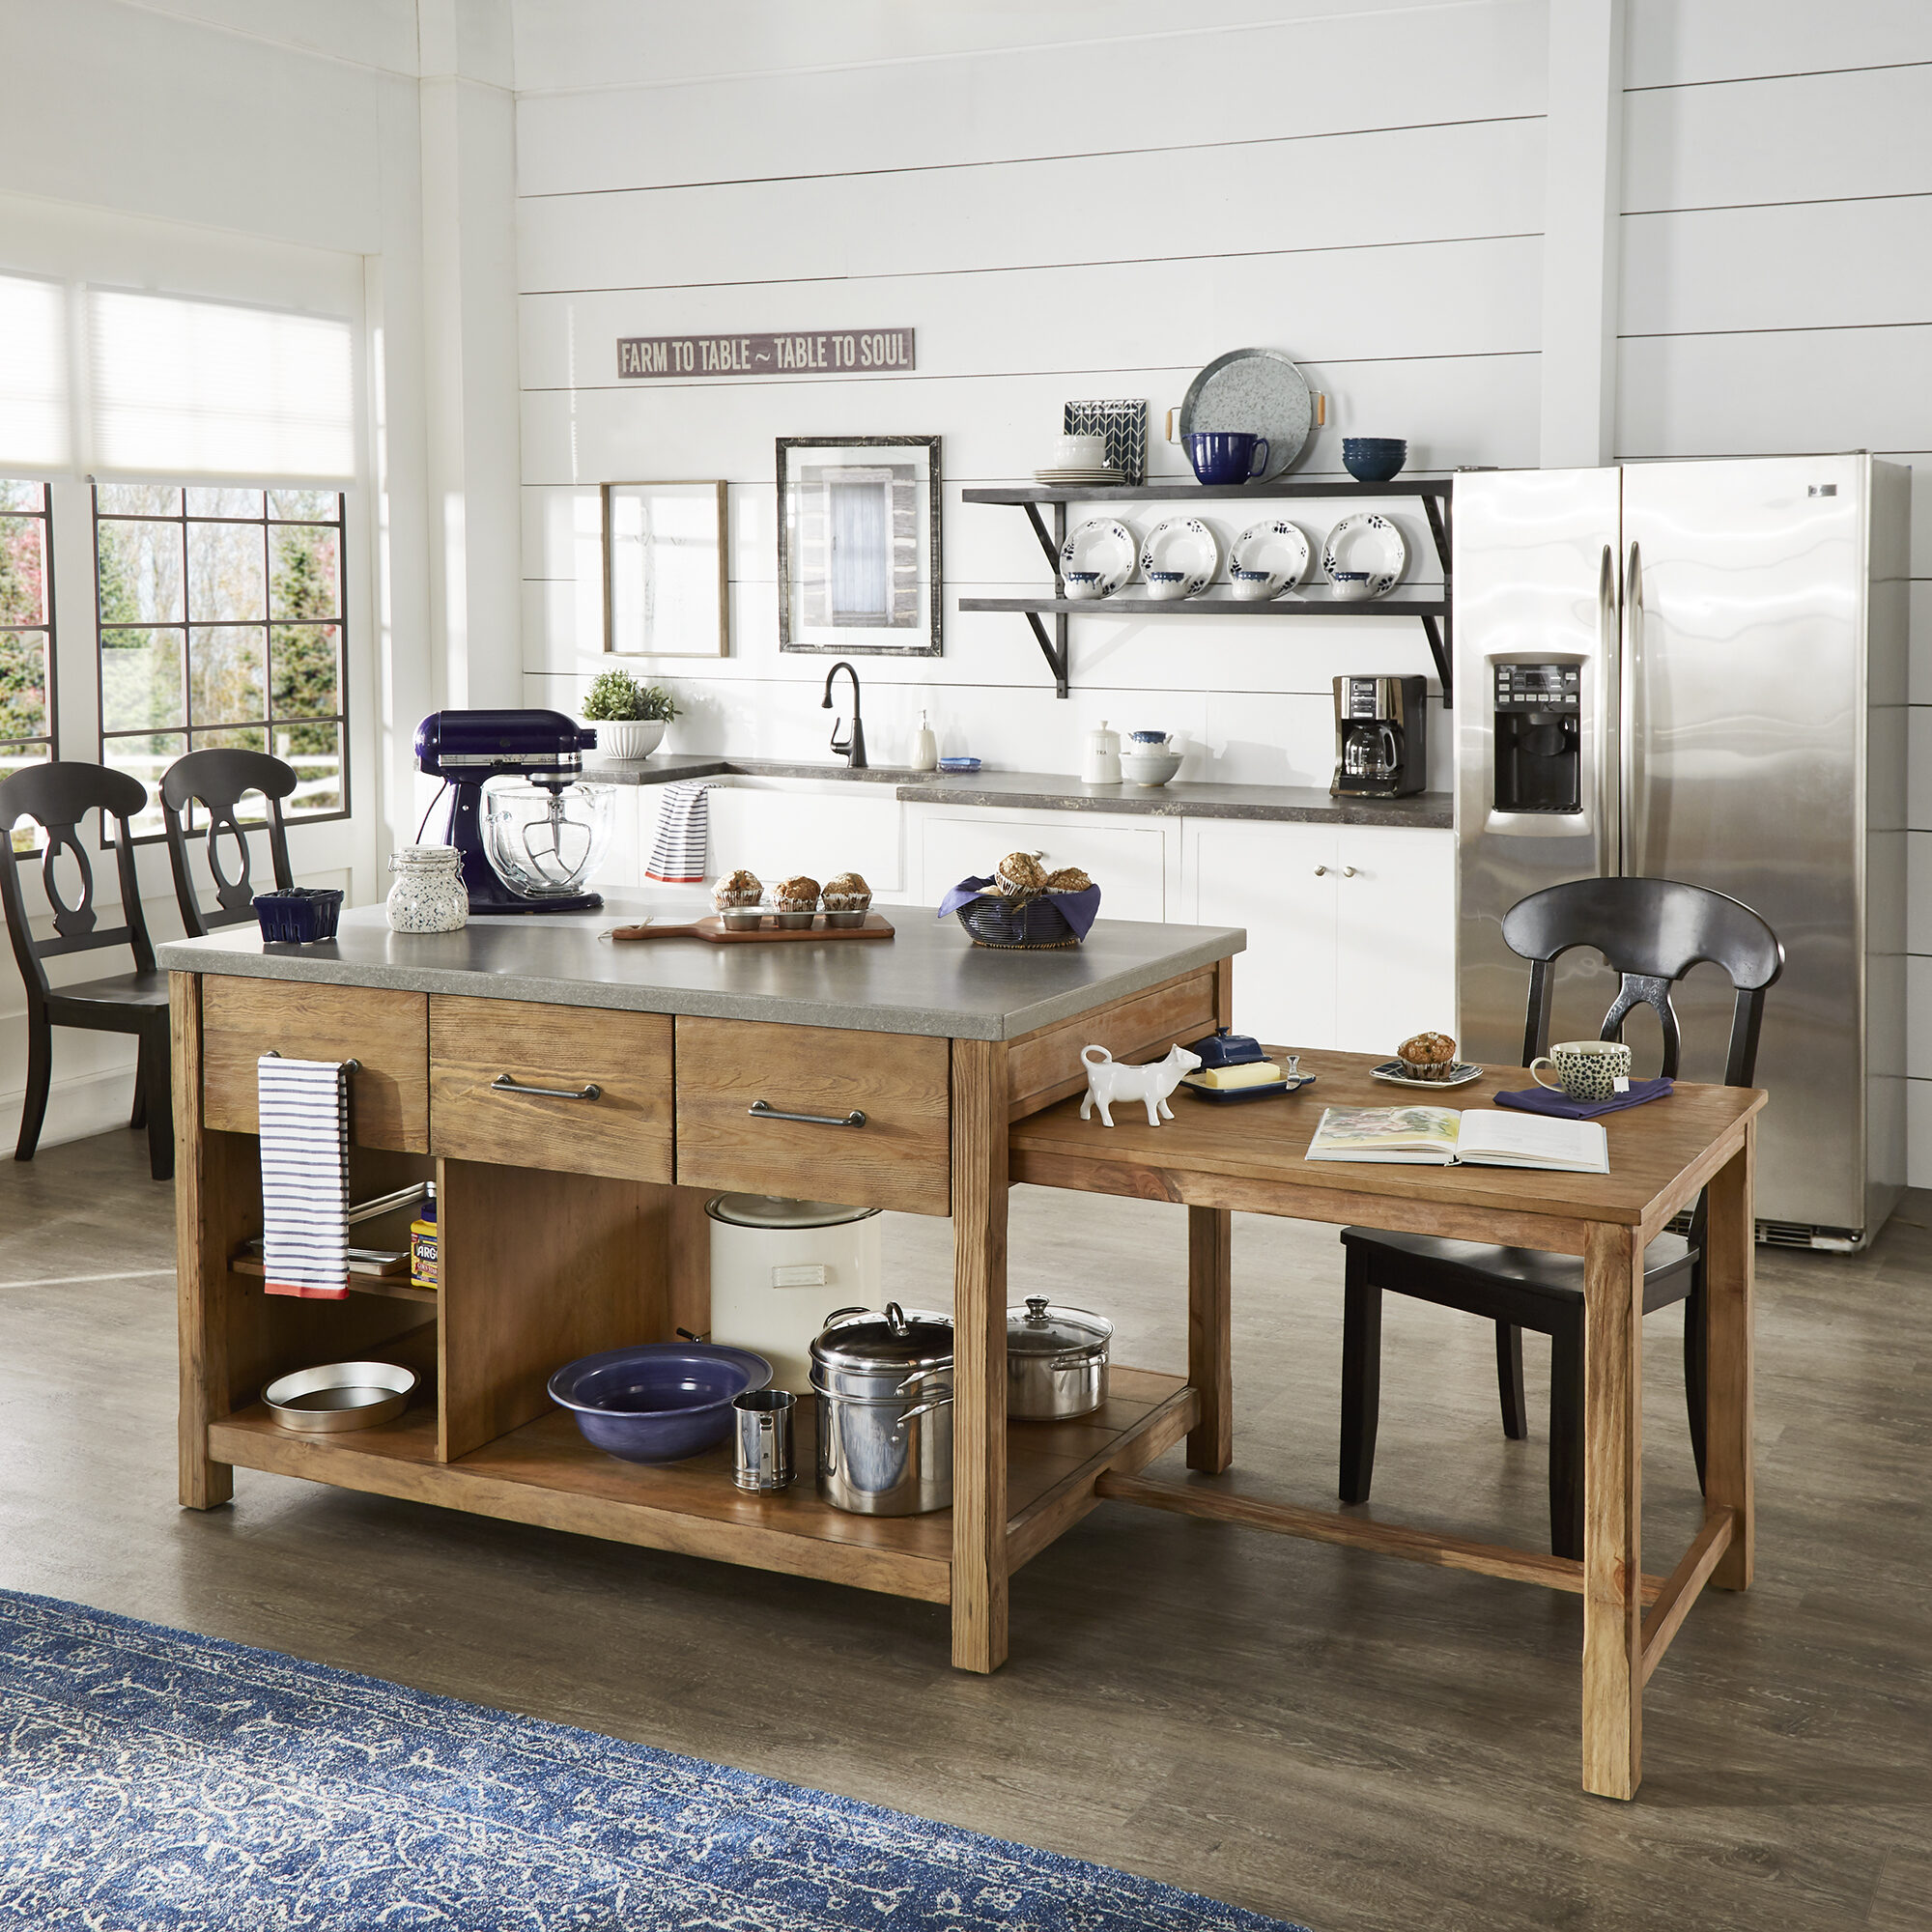 Our first back-to-school tip for parents centers on organizing your kitchen. This is our Tali Reclaimed Wood Extendable Kitchen Island by iNSPIRE Q Classic. It features a concrete surface with a wooden, oak-finished base, as well as an extendable table on the side.